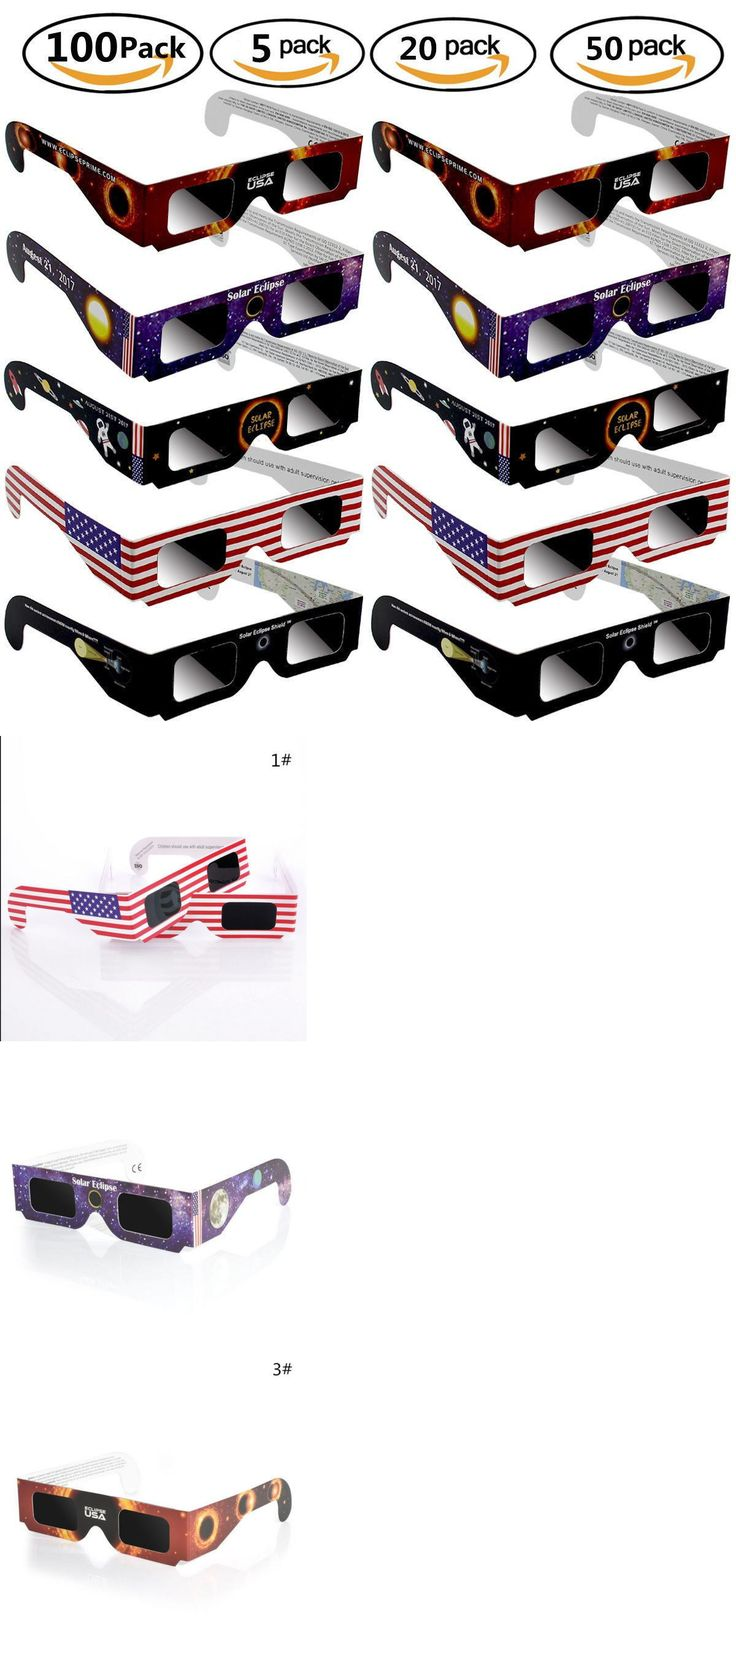 Telescopes and Astronomy 31745: Solar Lunar Eclipse Glasses, Safe Solar Viewing Protect Your Eyes August 21Th -> BUY IT NOW ONLY: $34.99 on eBay!